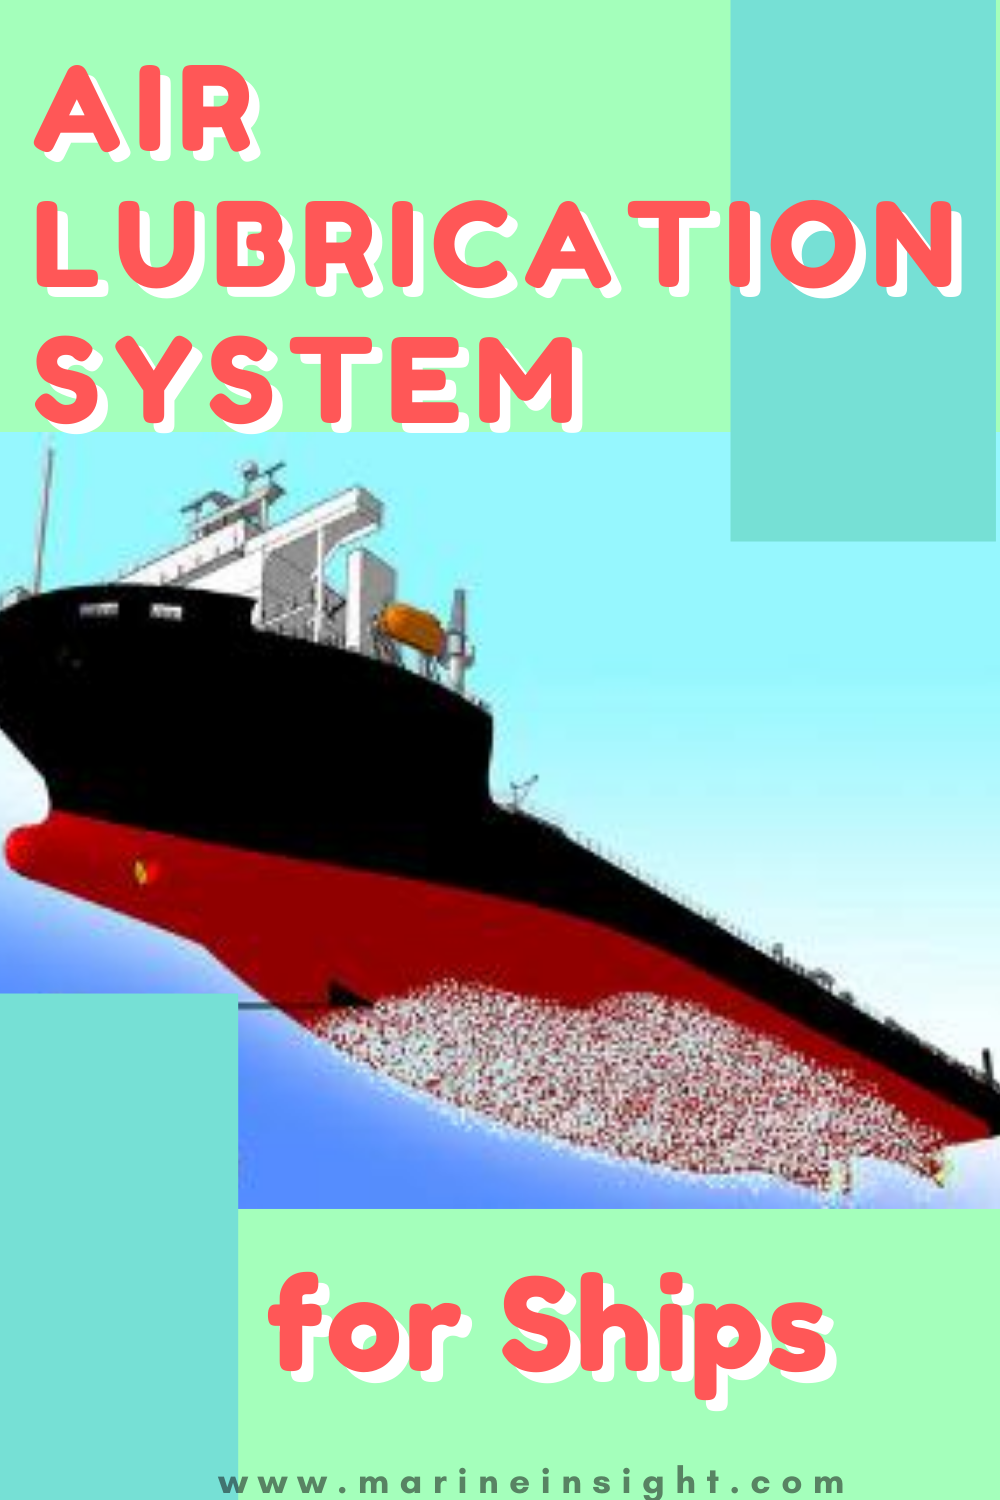 How Air Lubrication System For Ships Works Innovation Technology System Lubricants